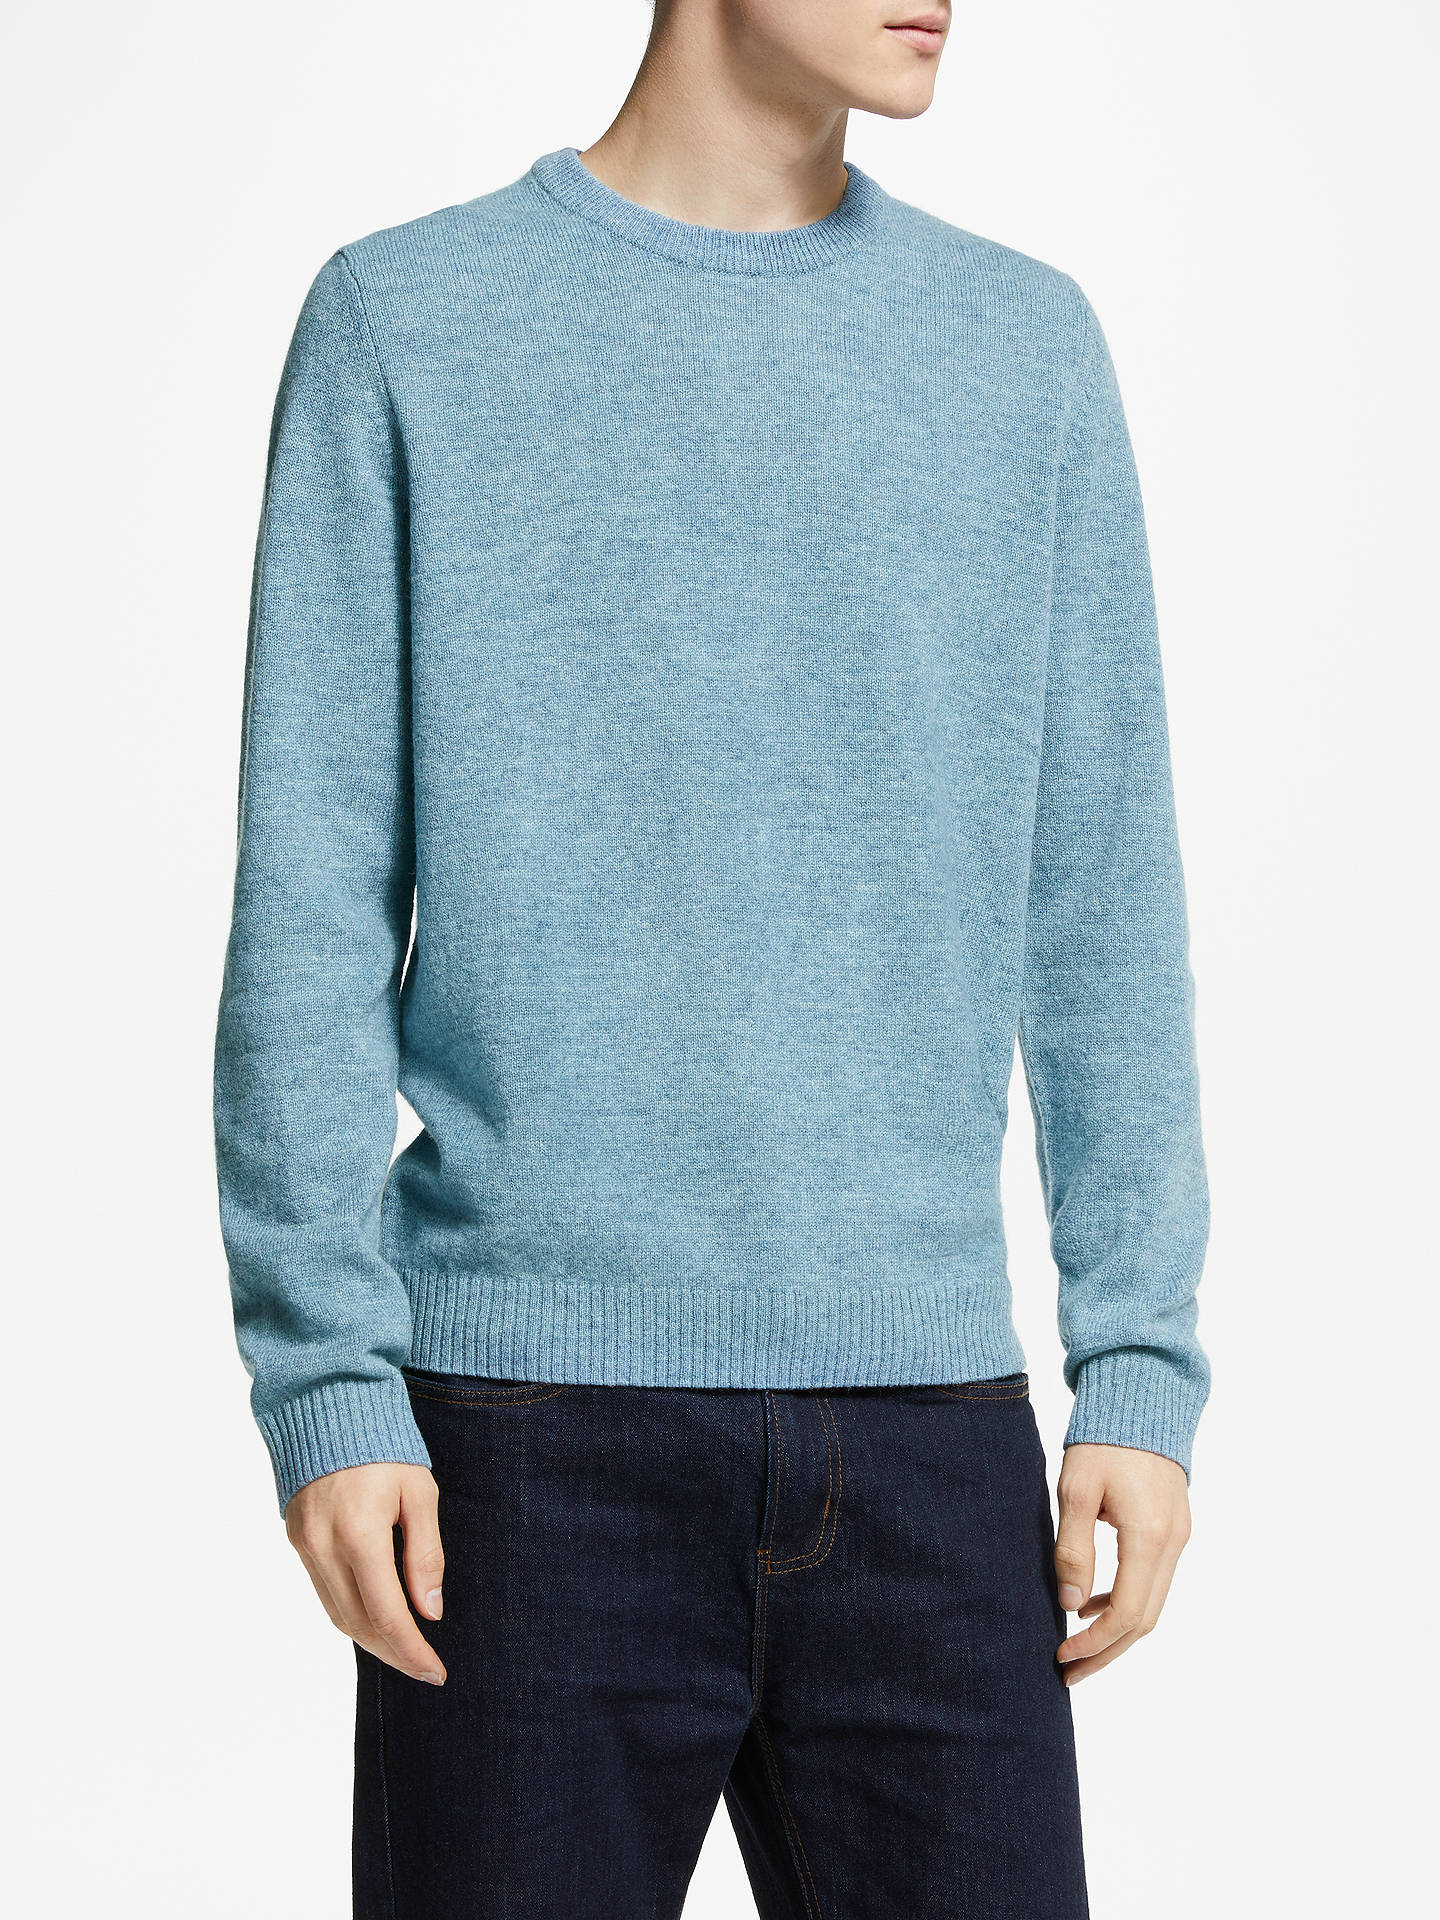 BuyJohn Lewis & Partners Merino Cashmere Crew Neck Jumper, Pale Blue, S Online at johnlewis.com